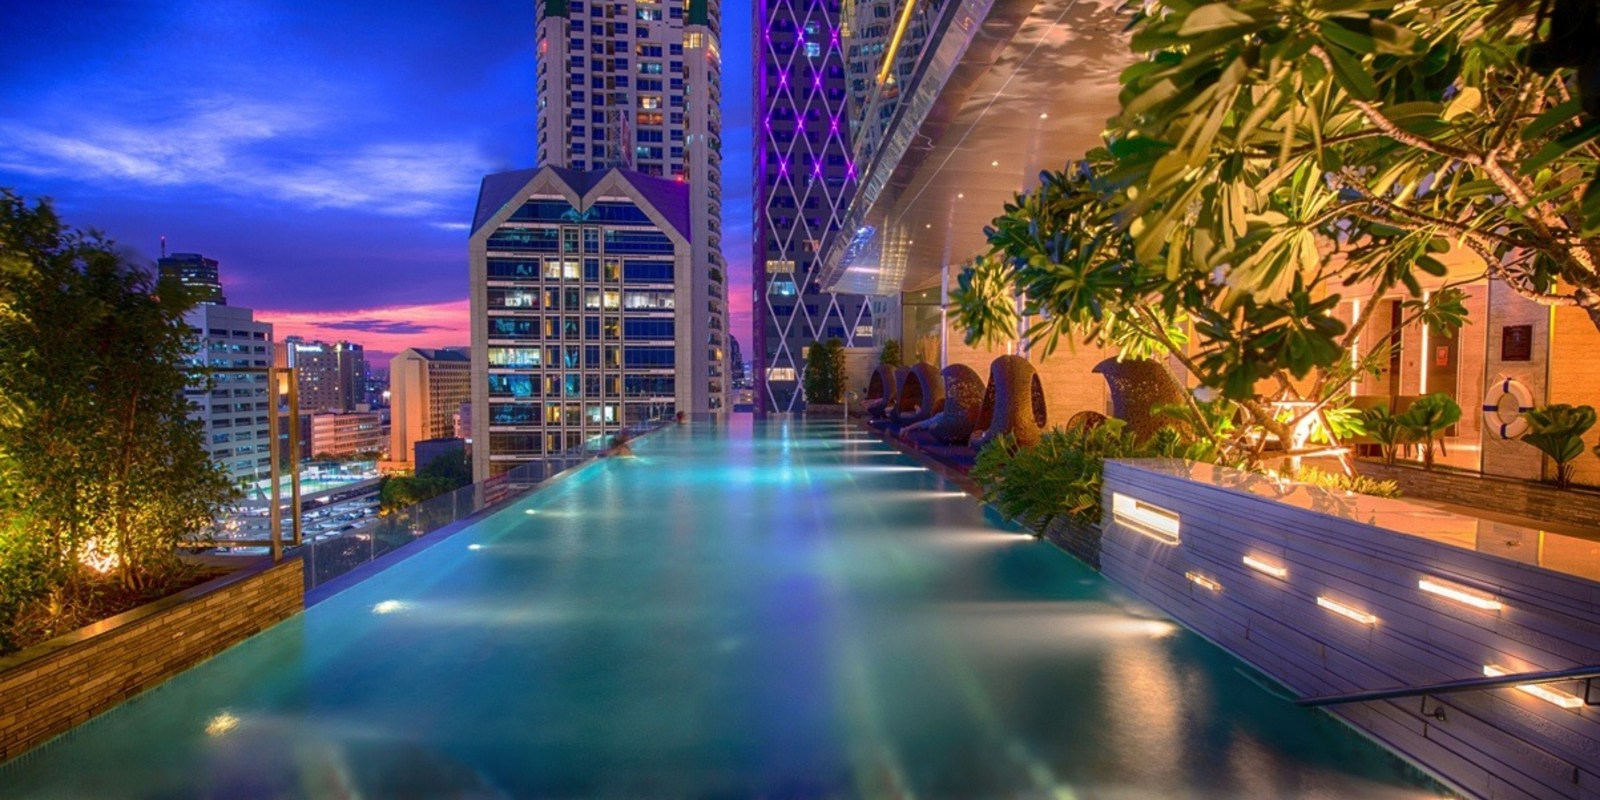 Eastin Grand Hotel Sathorn piscine debordement